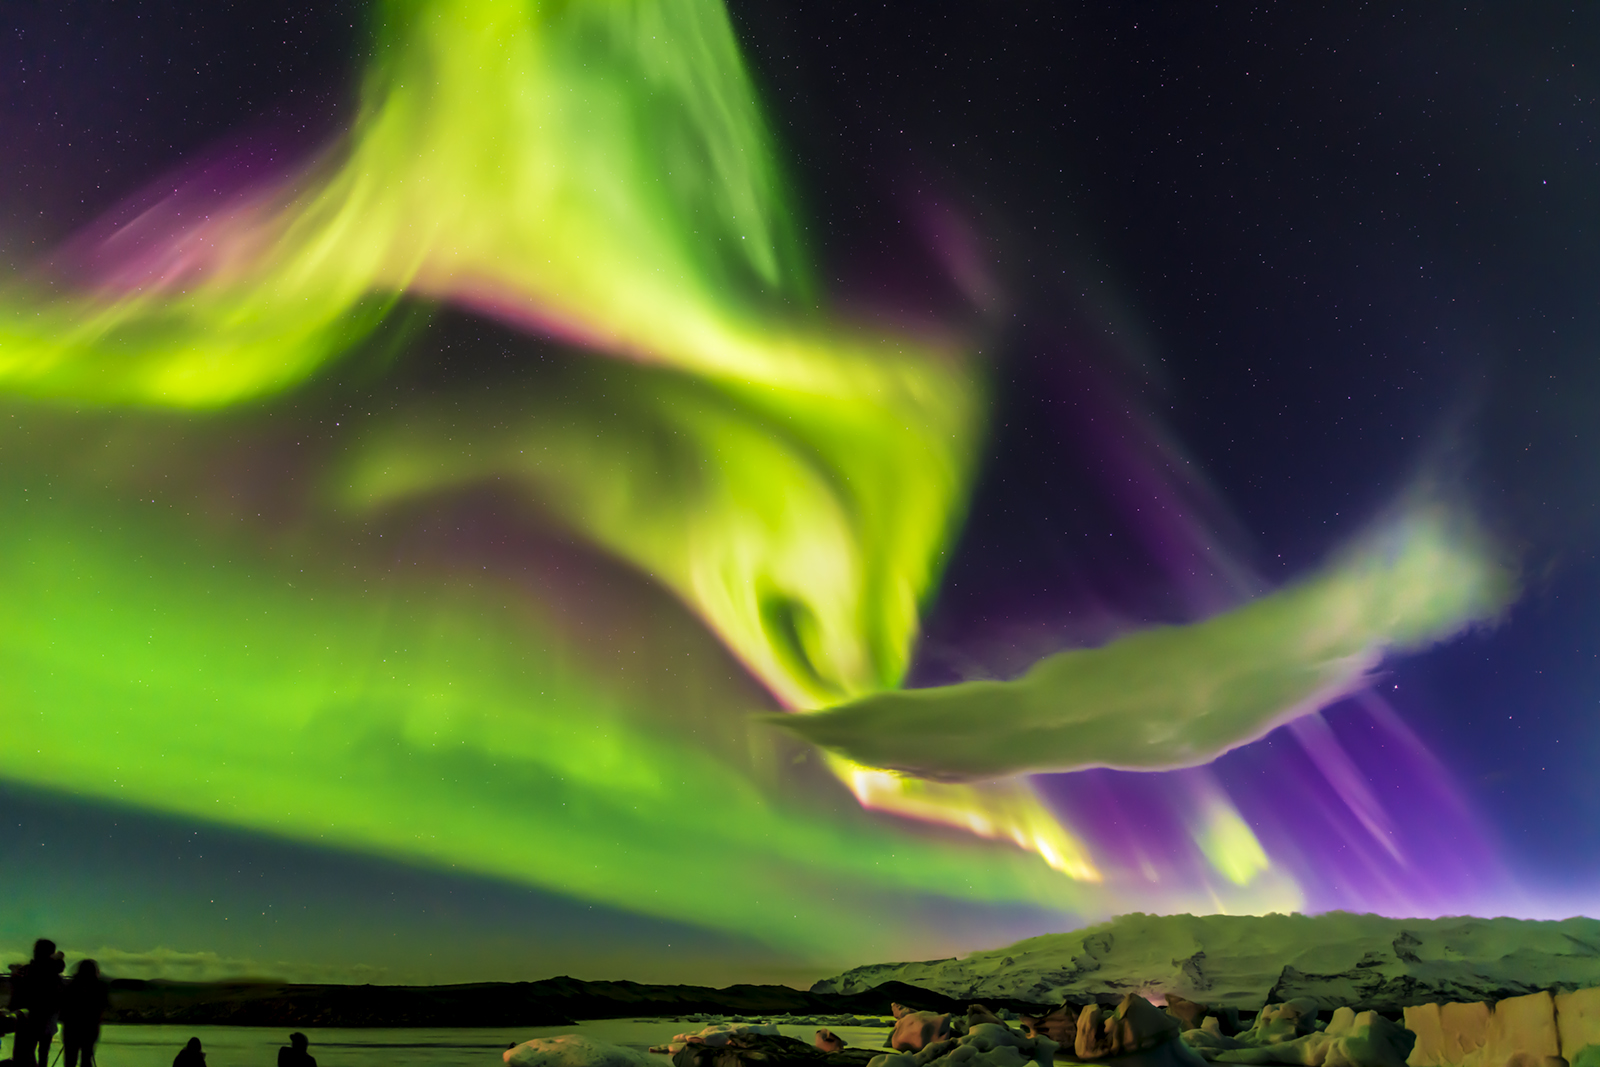 Aurora Borealis captured in Jokulsarlon, Iceland by Robert Rotella